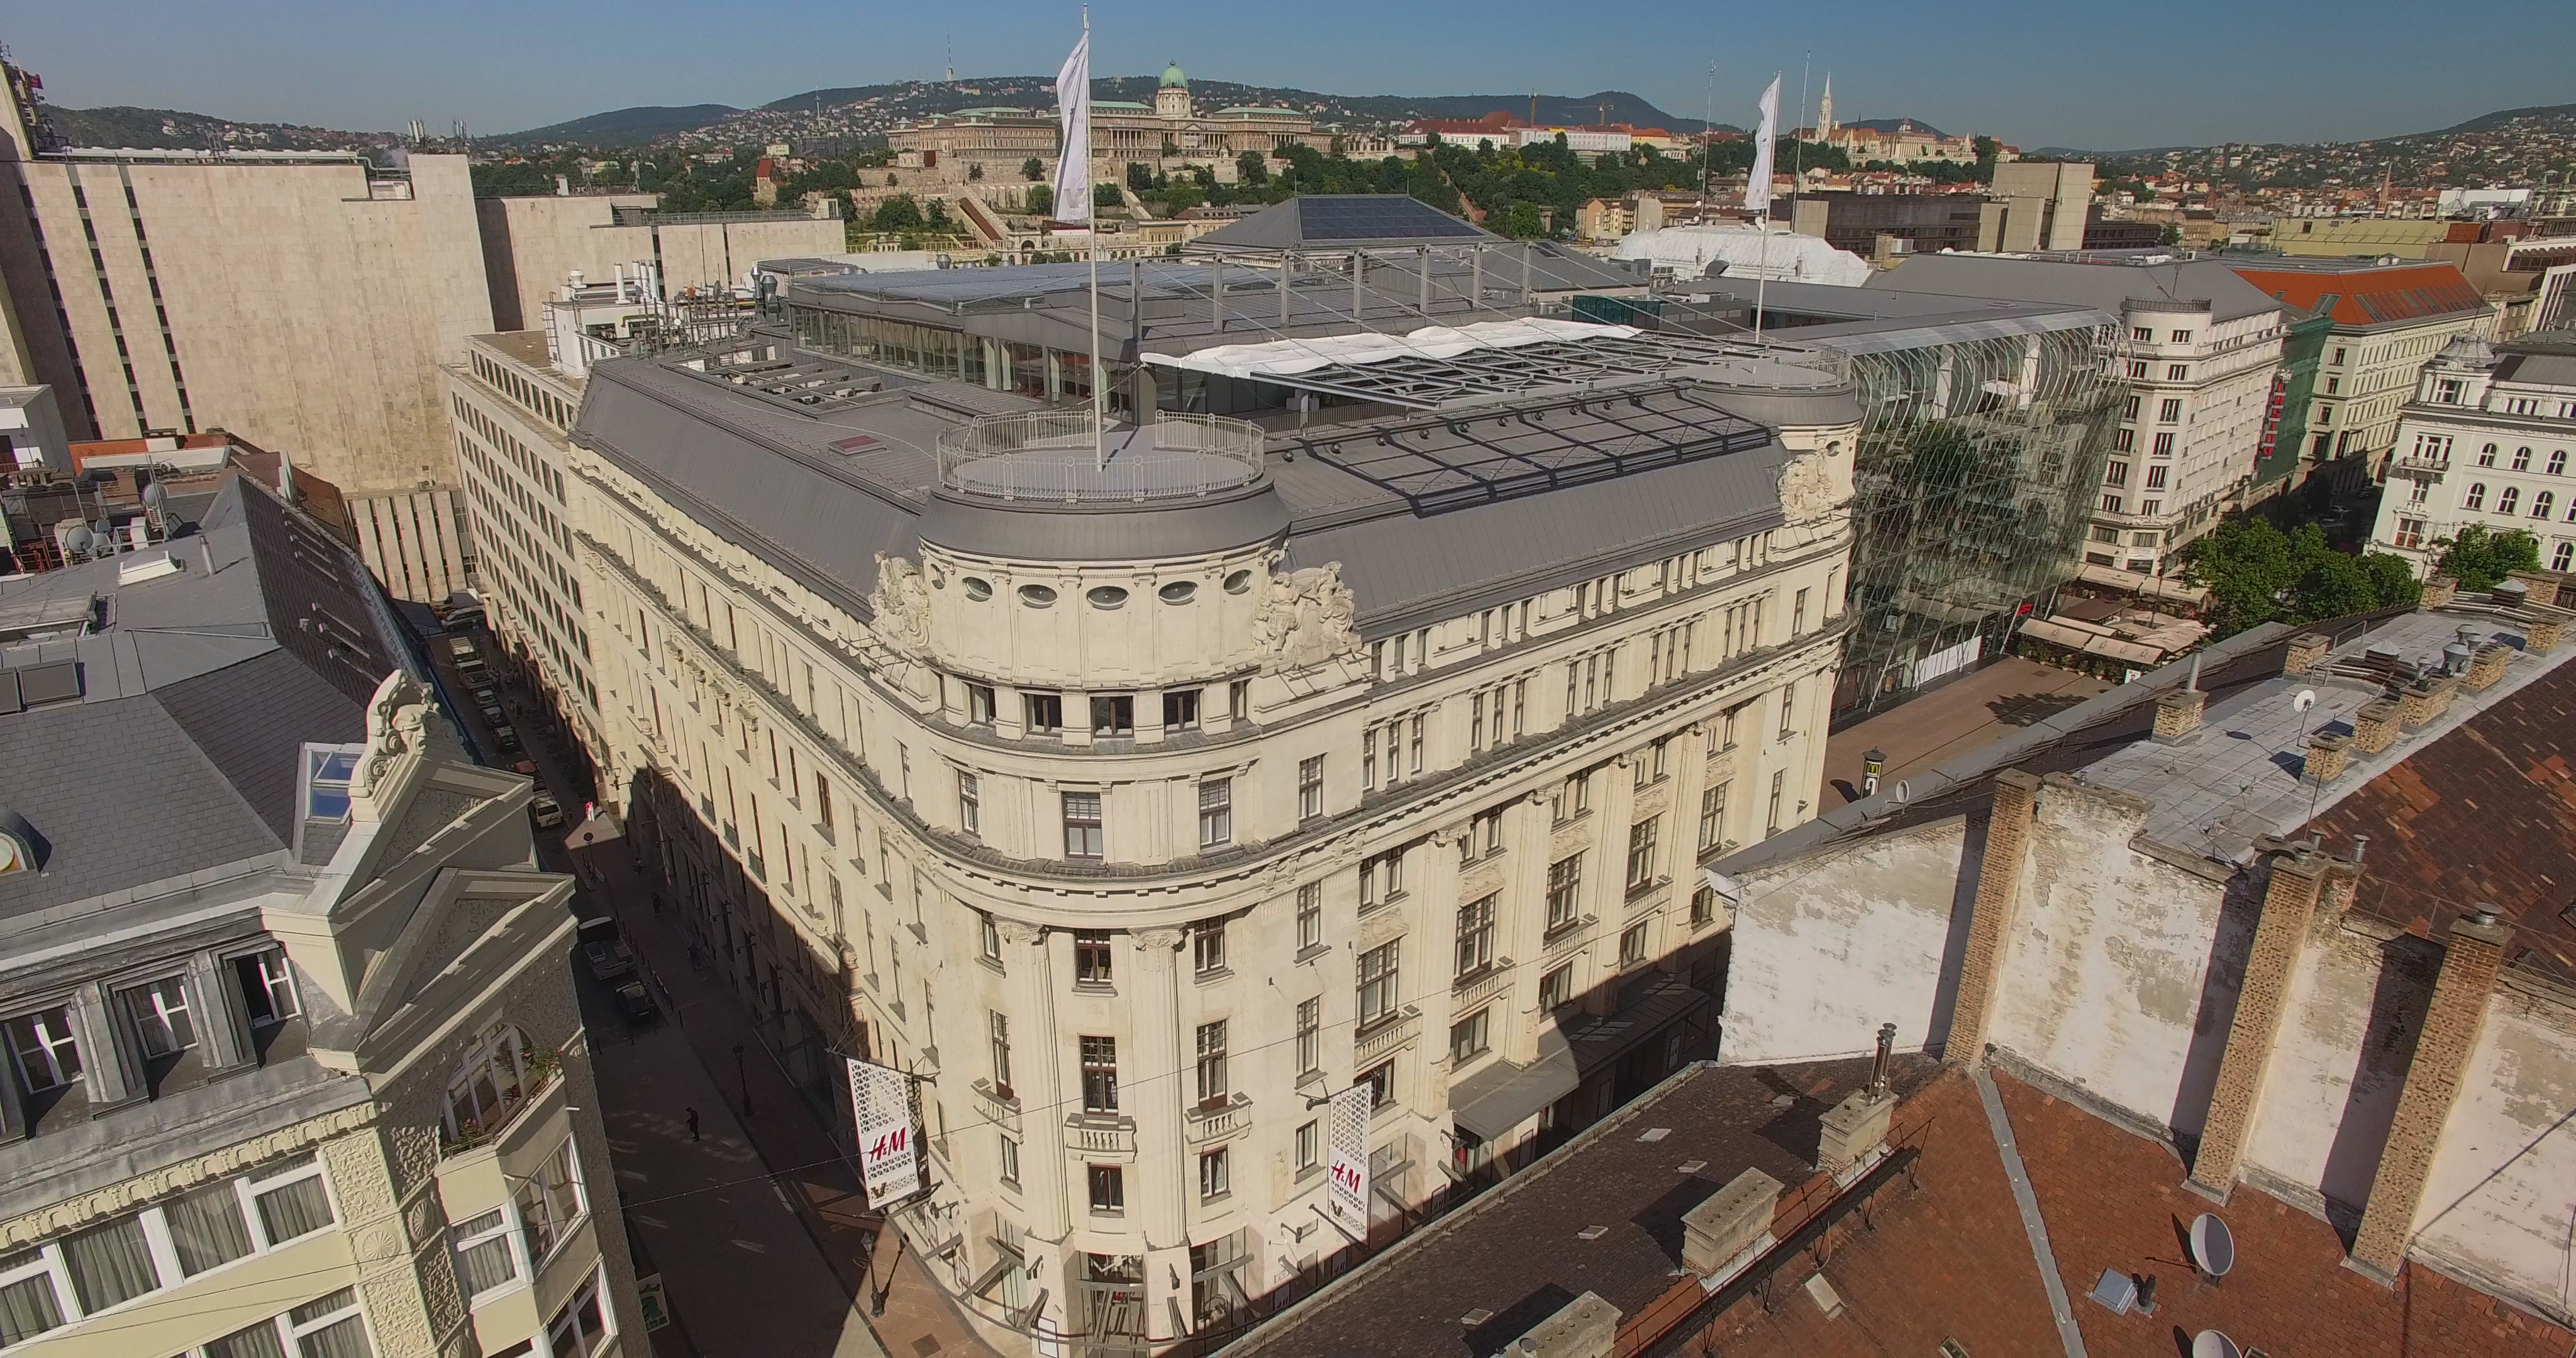 32._aerial_photo_of_the_building_vaci1_budapest_hungary